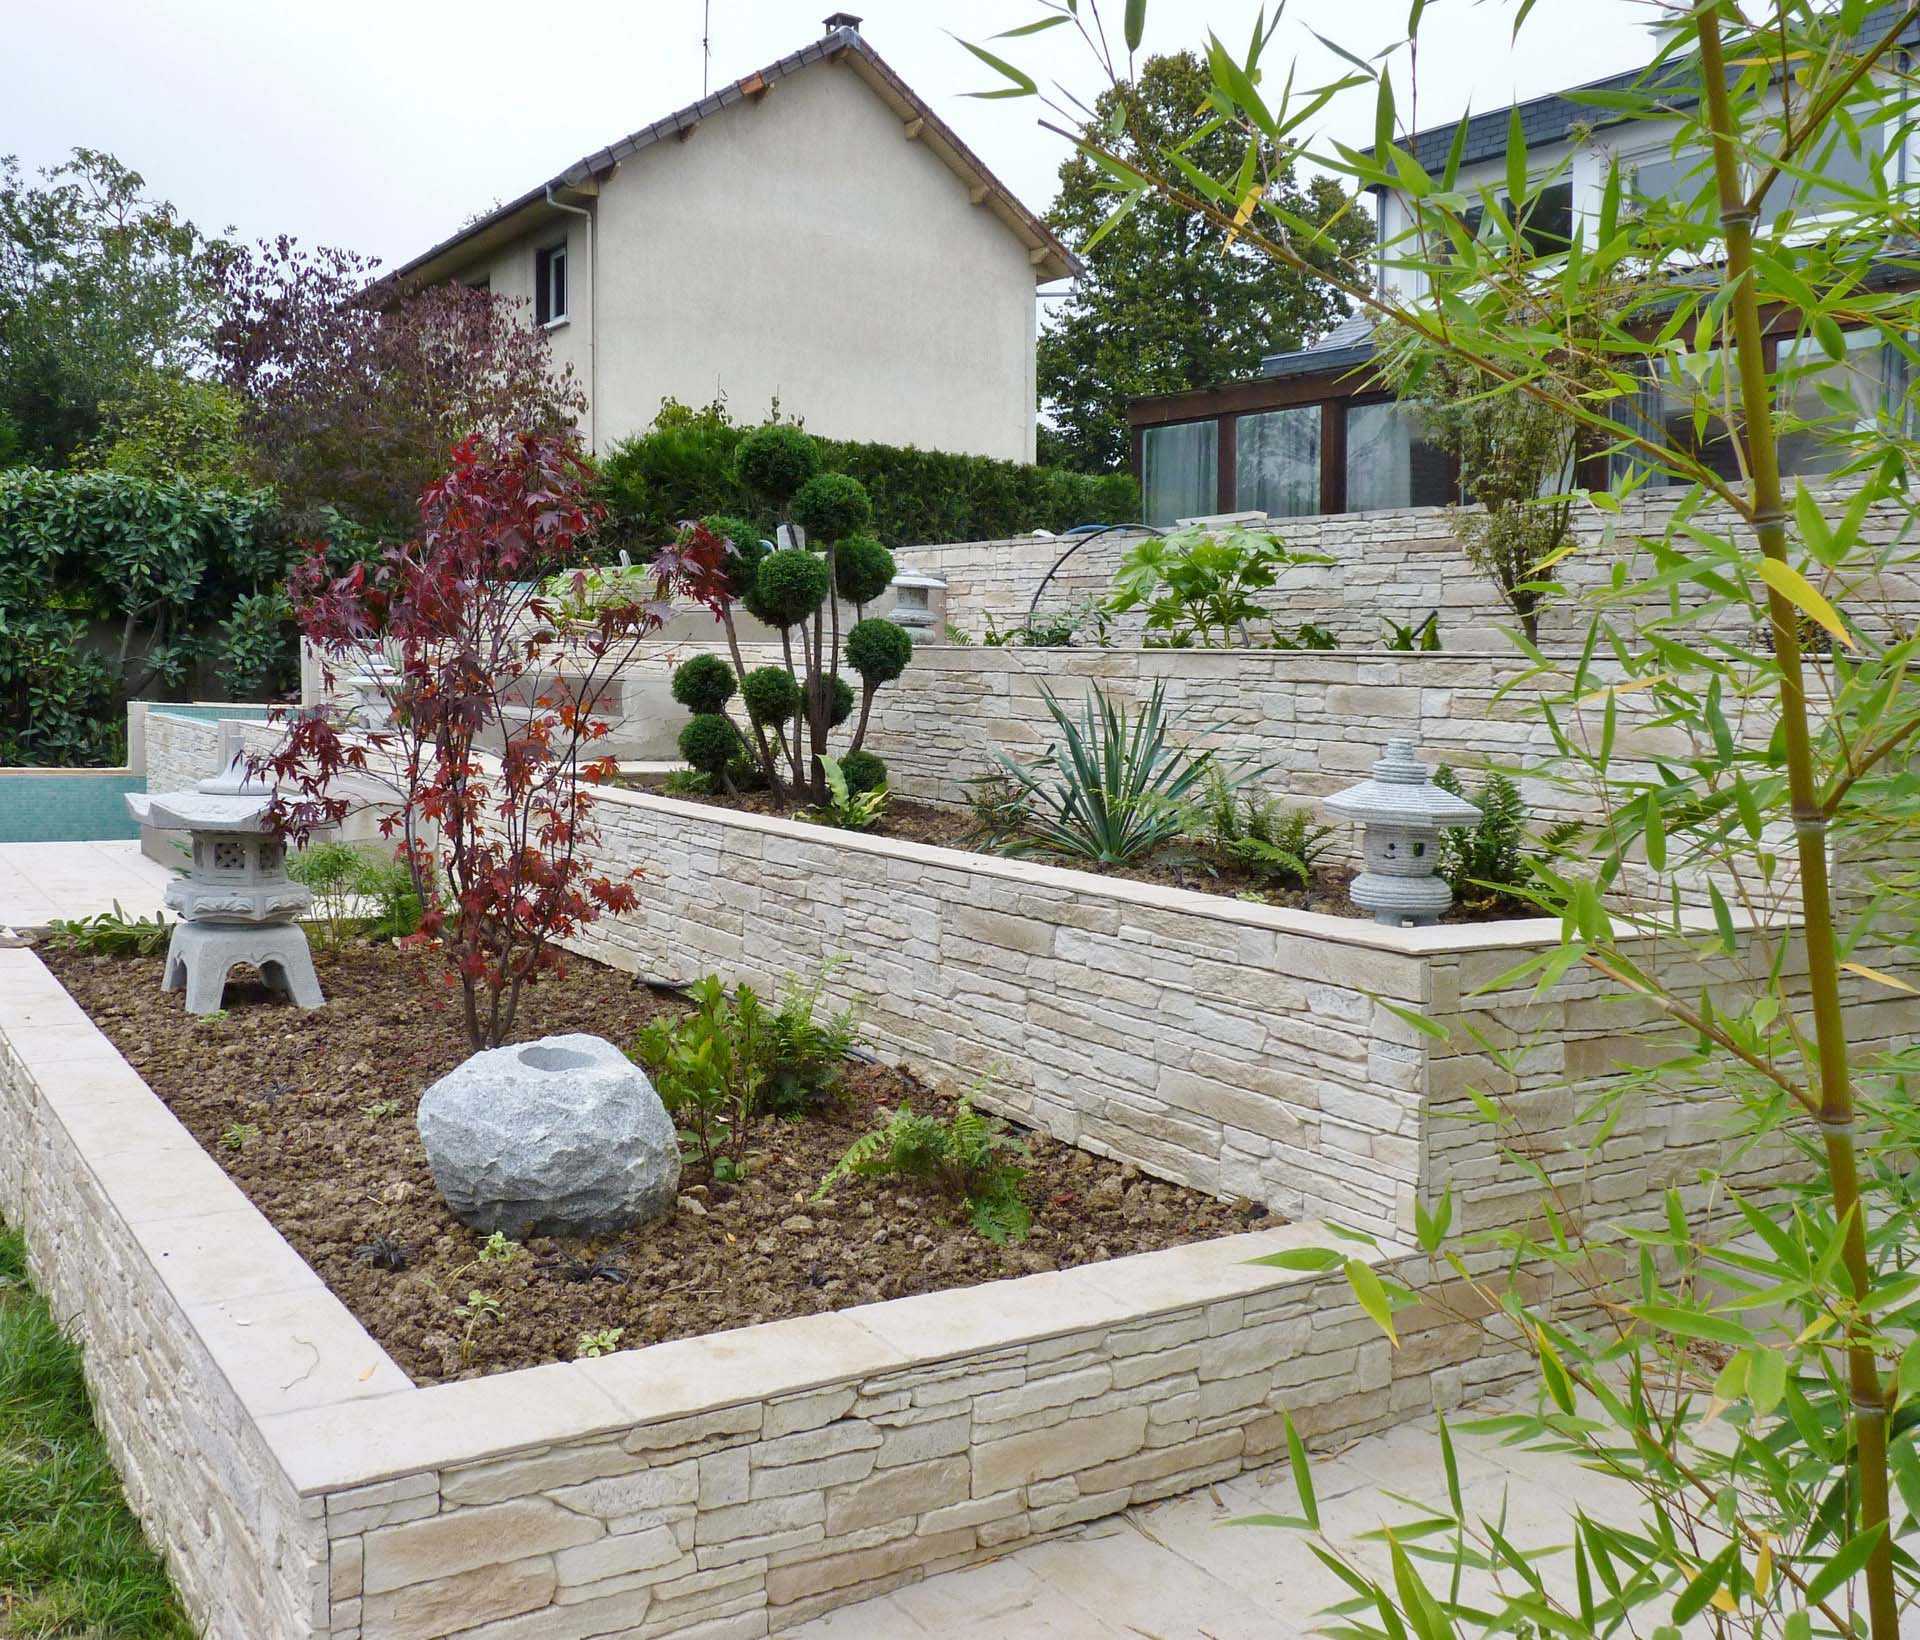 R novation zen maison typique ann es 70 agence architecte for Pierre de decoration jardin